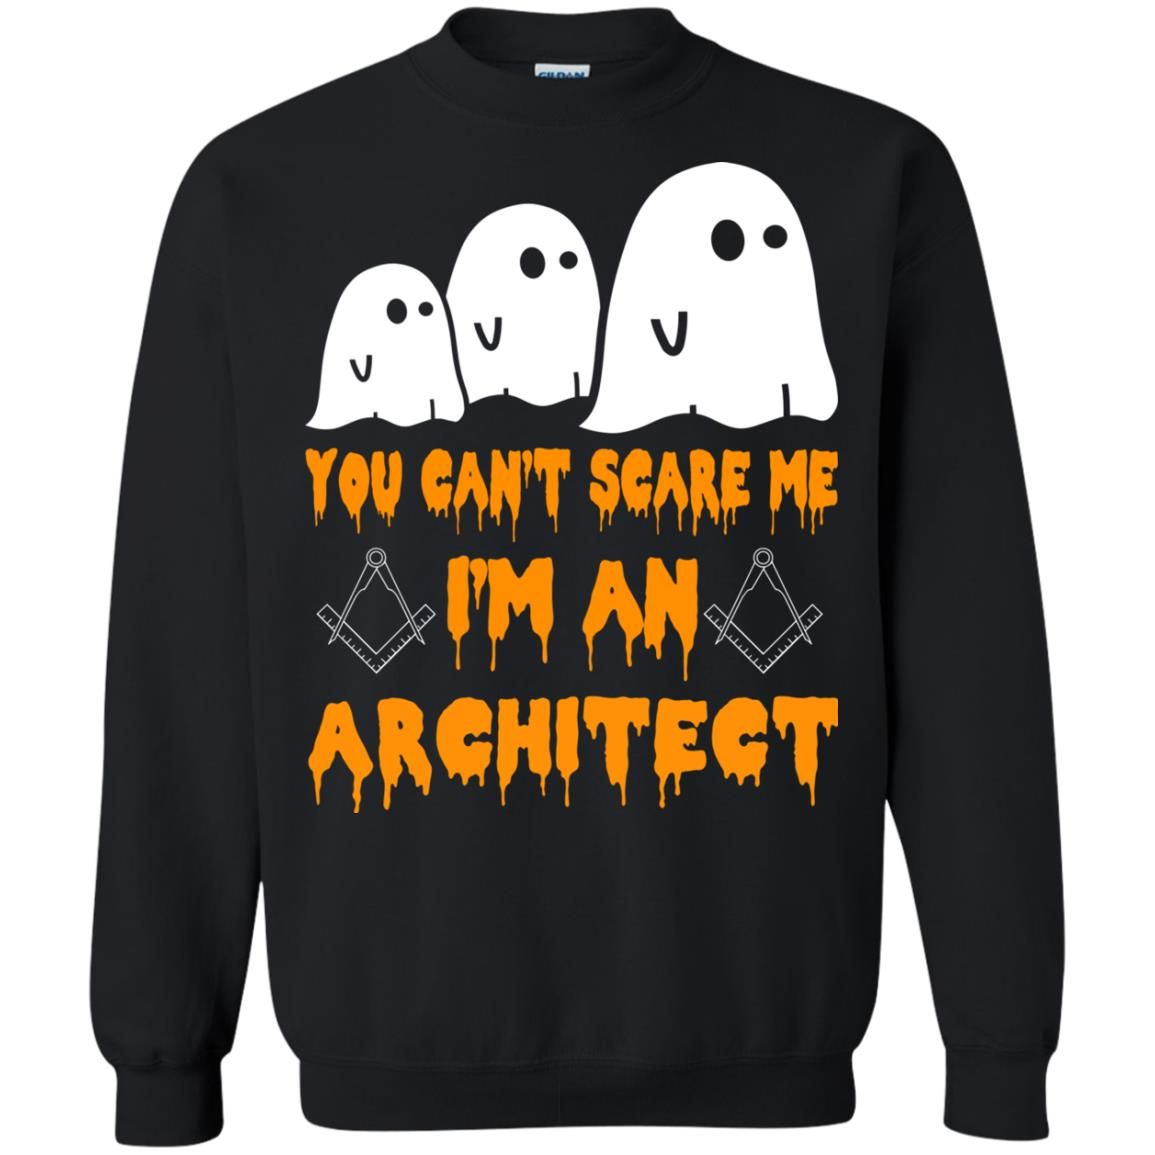 image 521 - You can't scare me I'm an Architect shirt, hoodie, tank